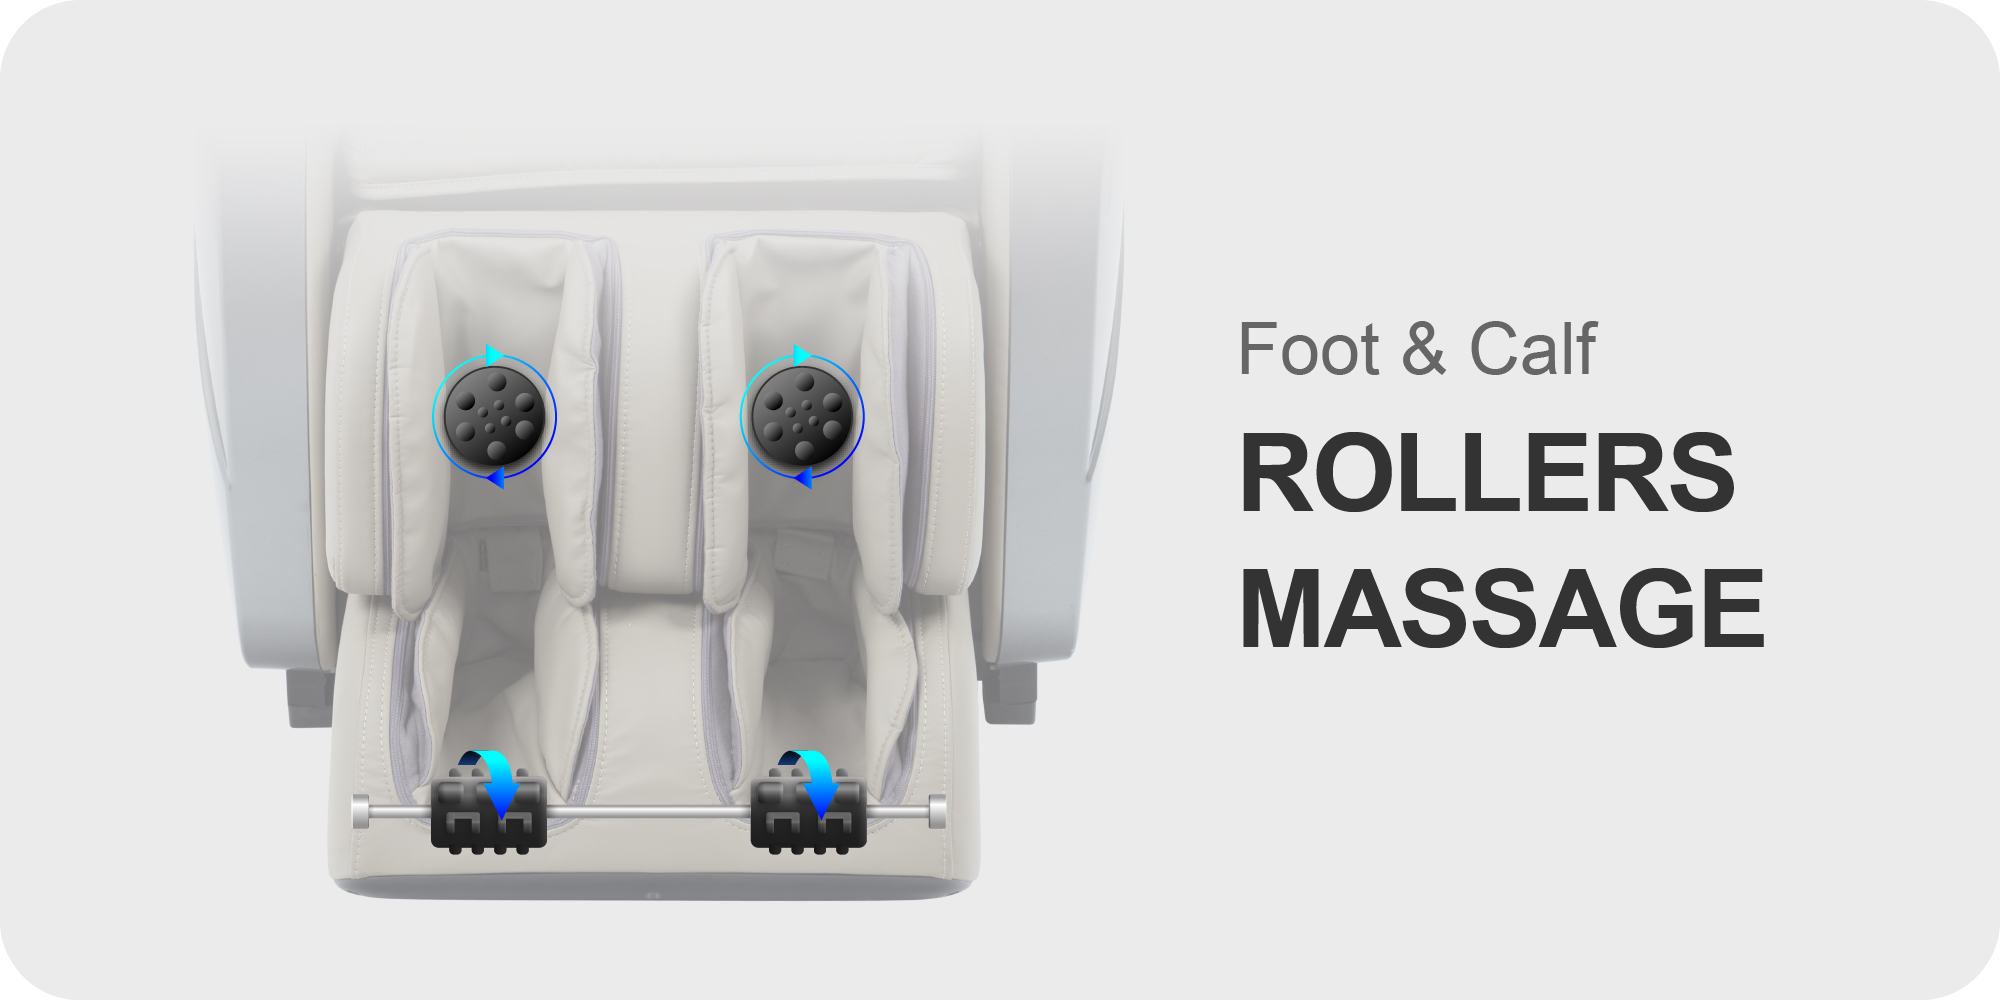 Foot & Calf Rollers Massage